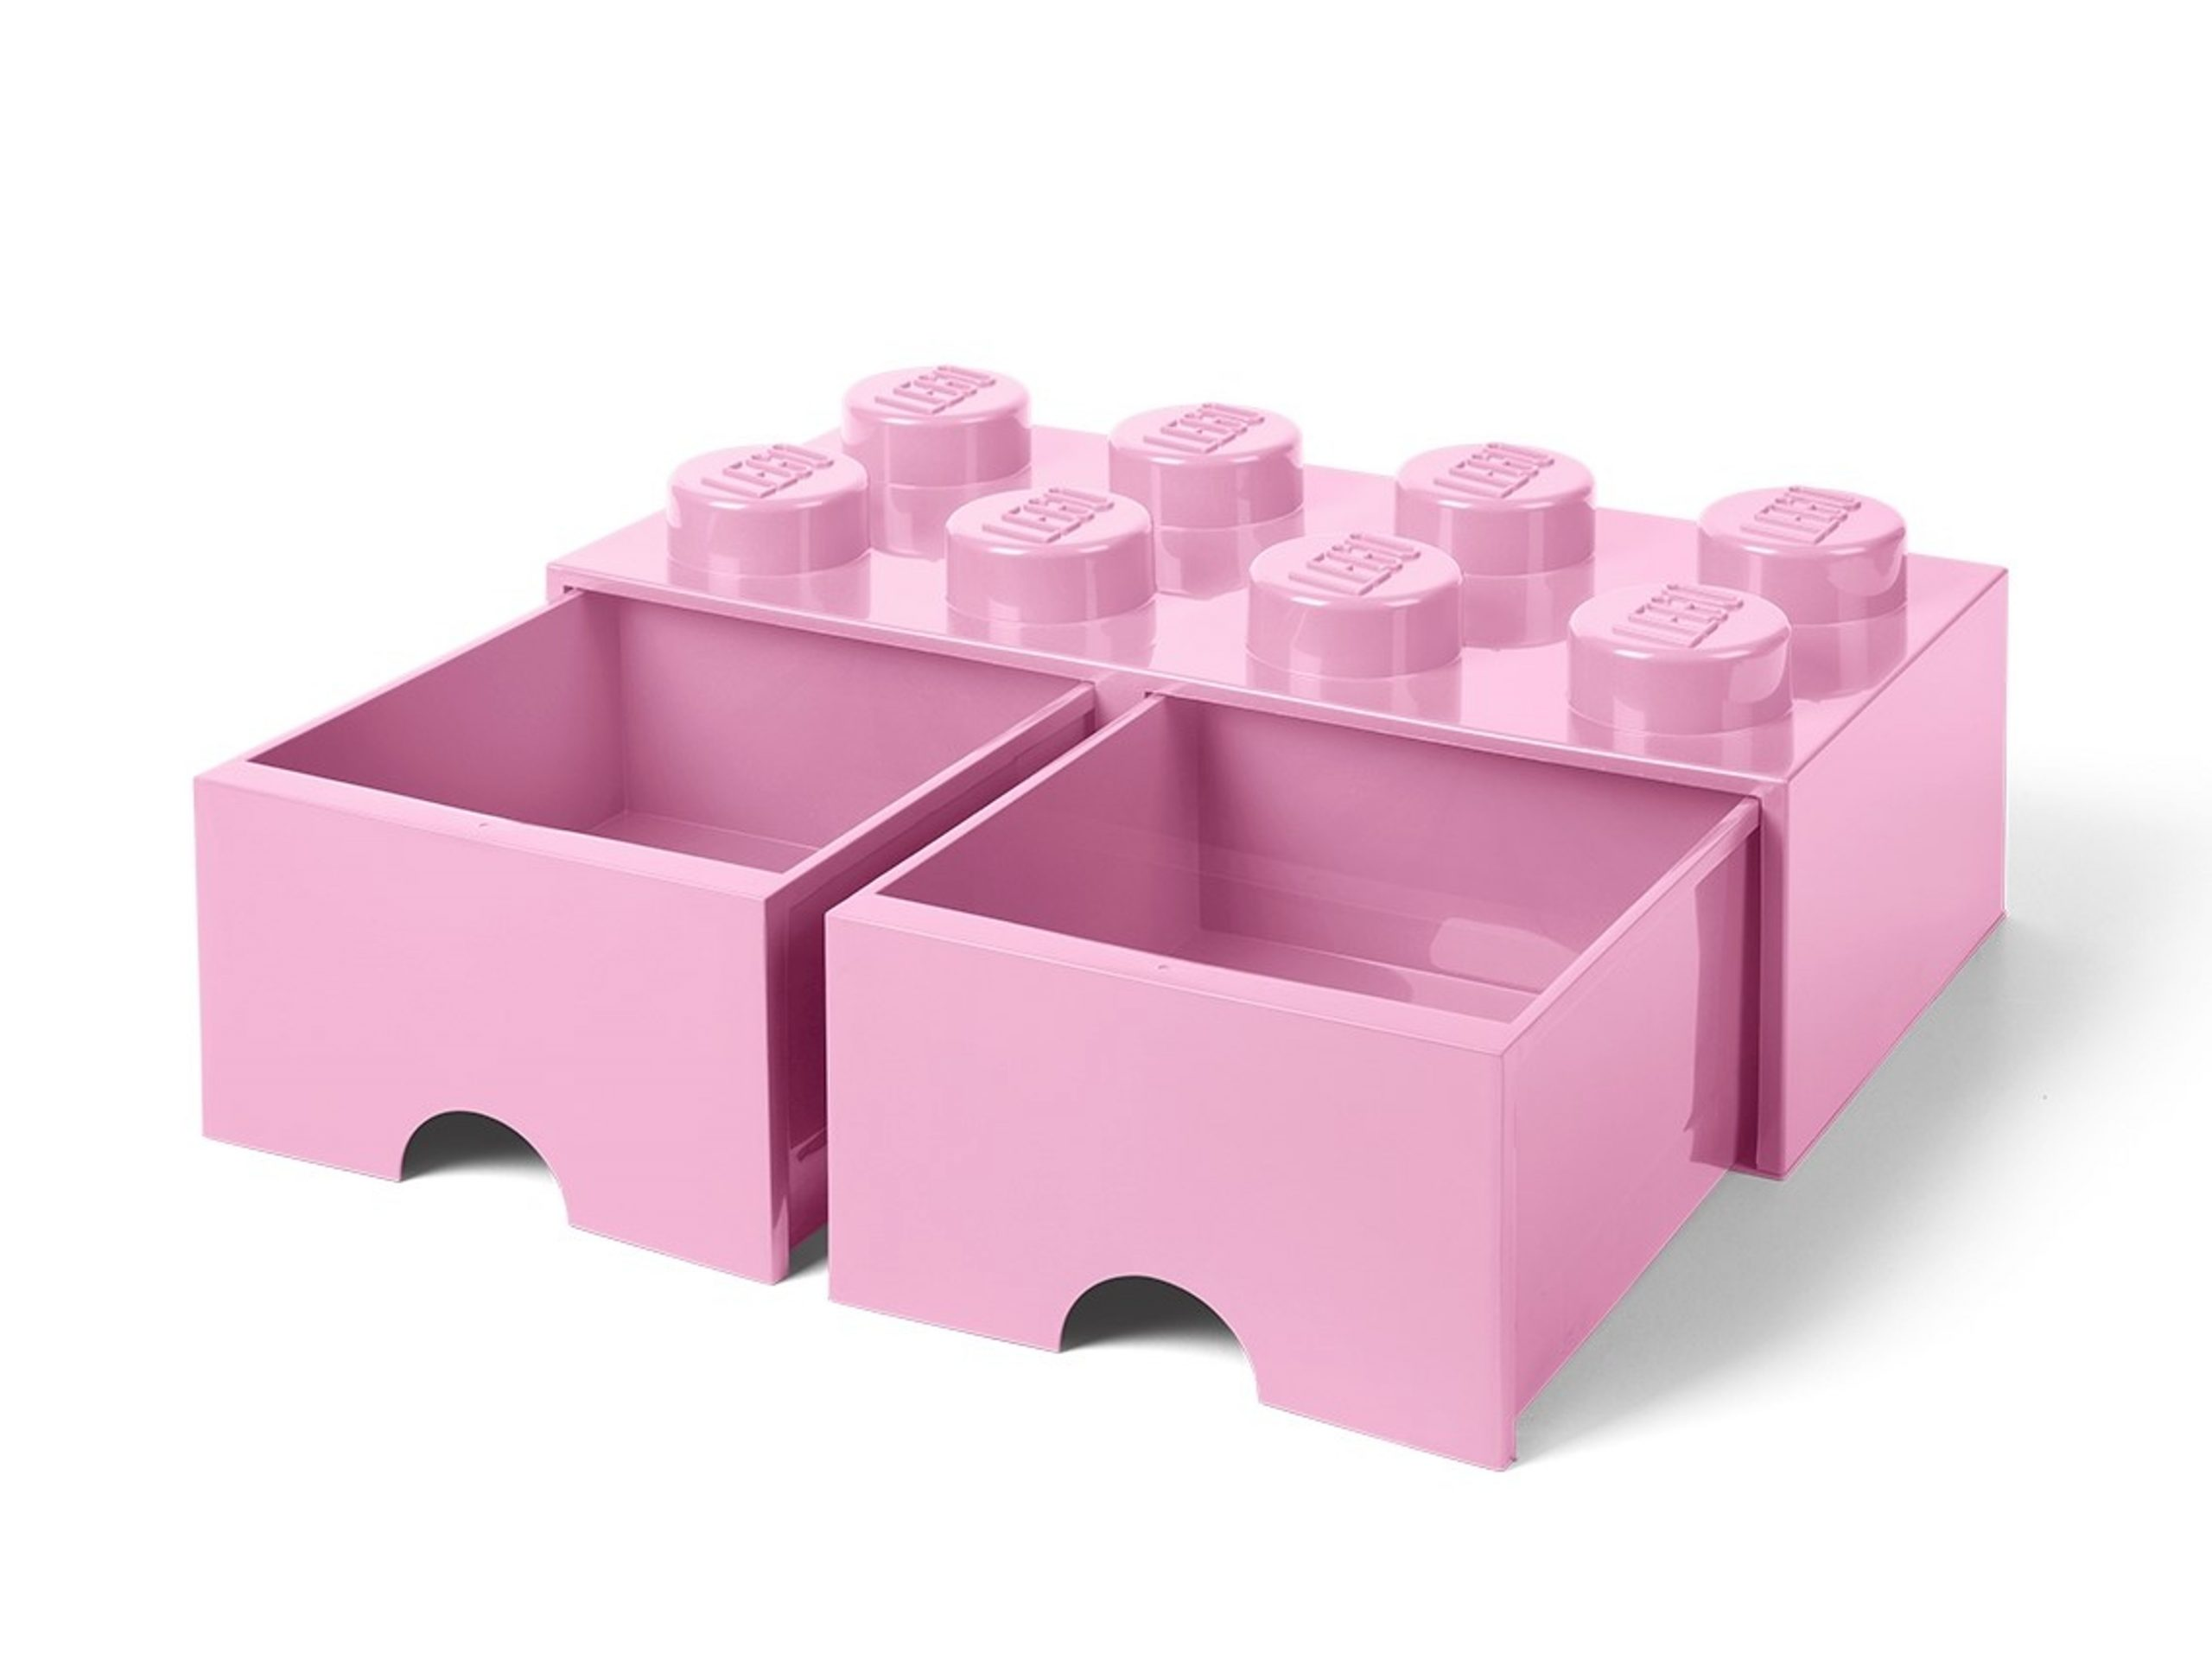 lego 5005719 8 stud light purple storage brick drawer scaled